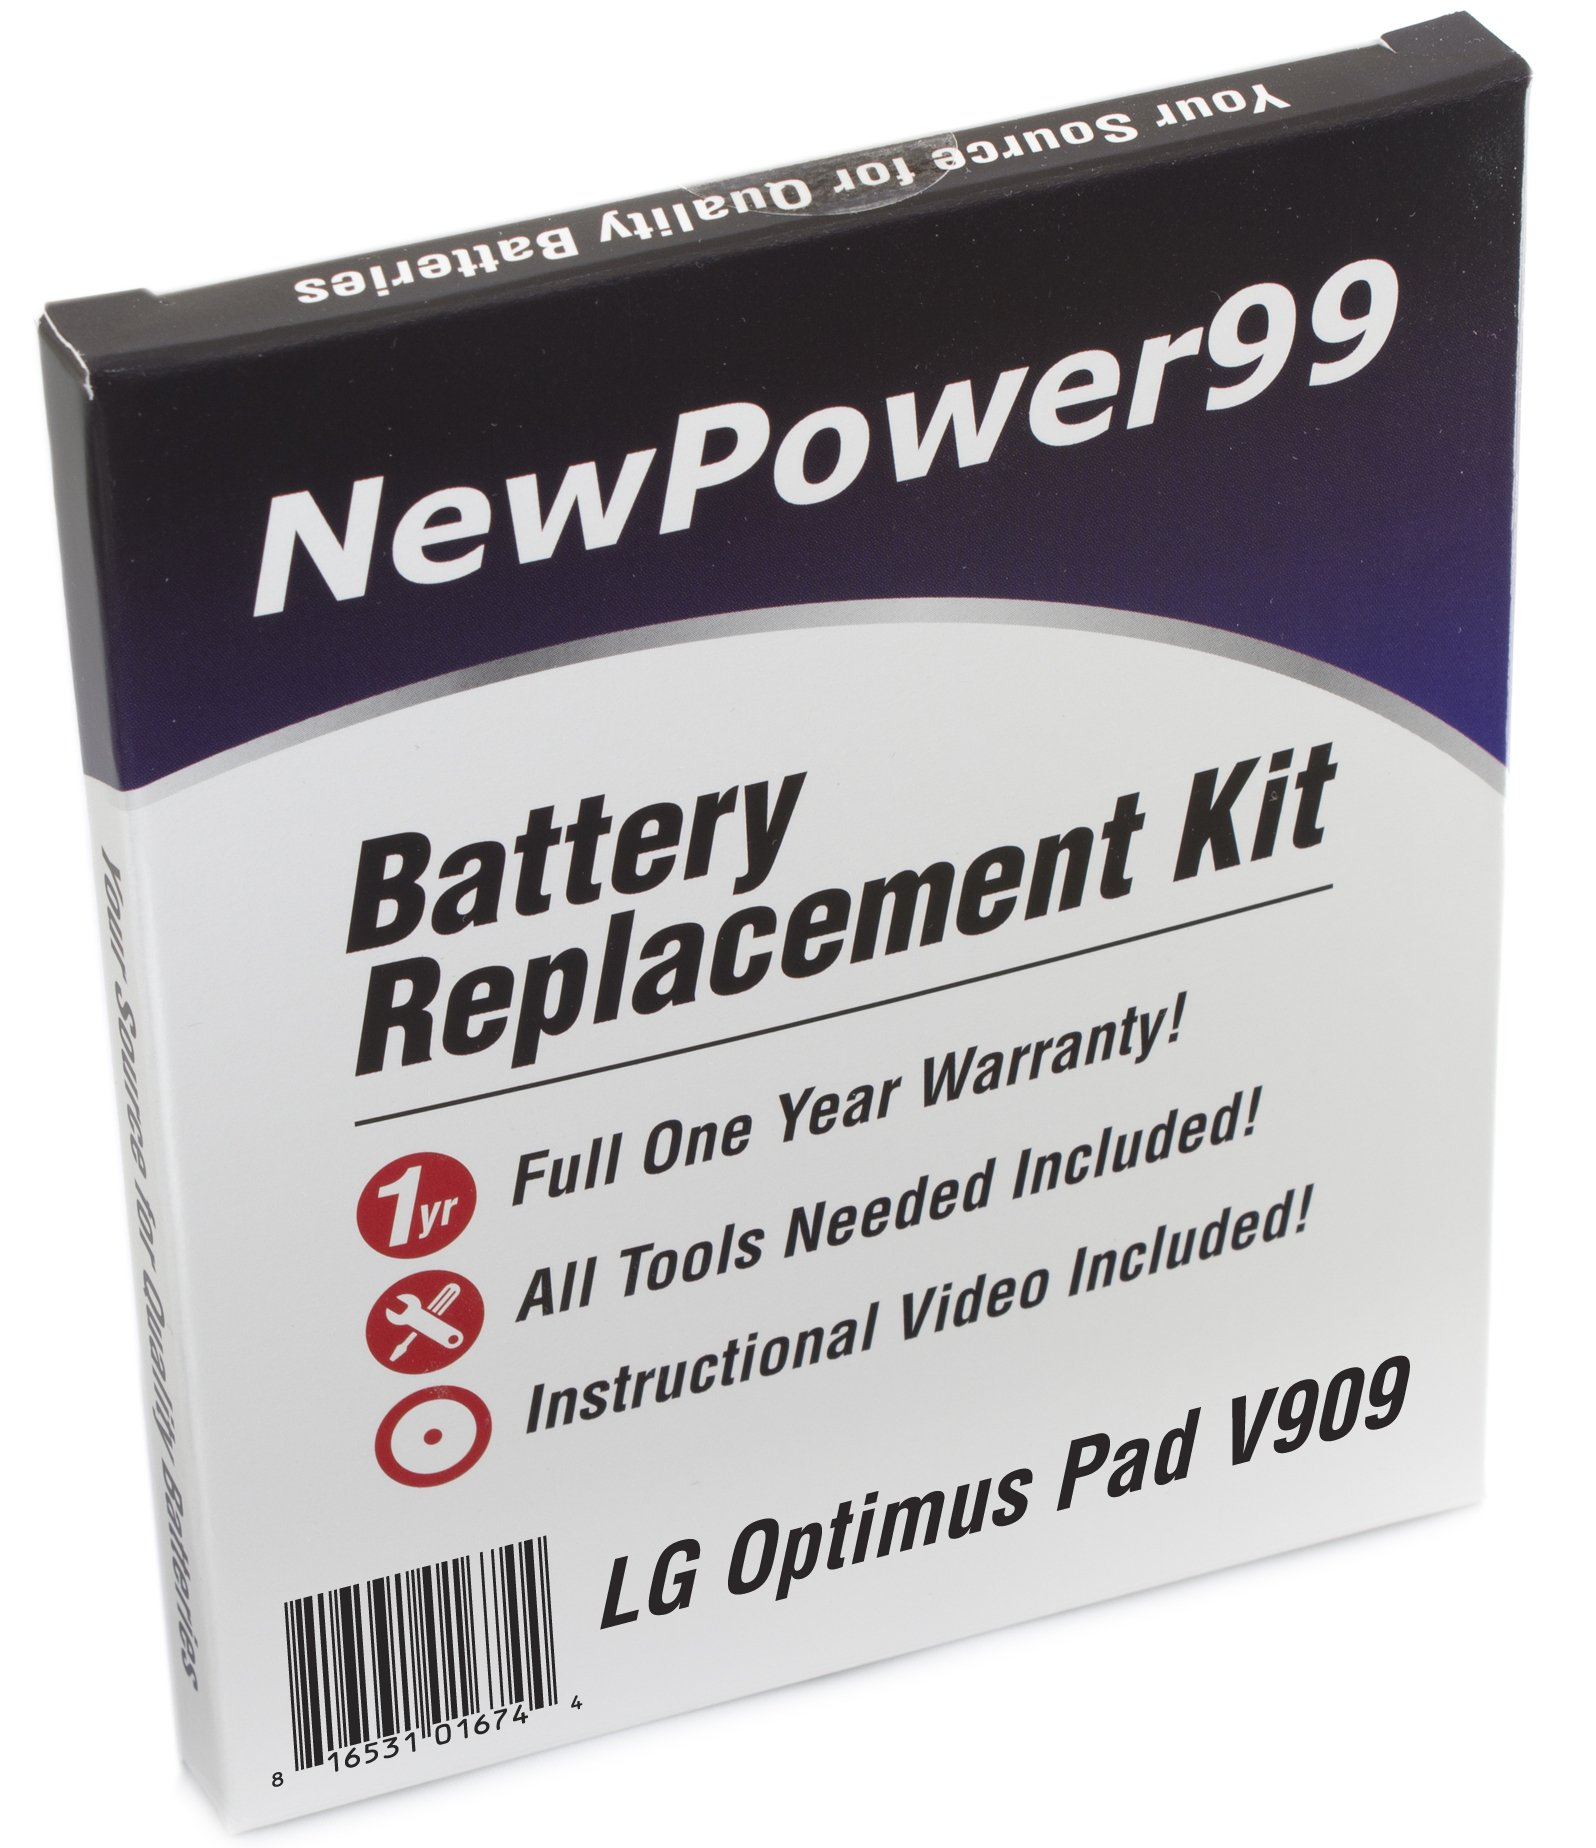 LG Optimus Pad V909 Battery Replacement Kit with Installation Video, Tools, and Extended Life Battery